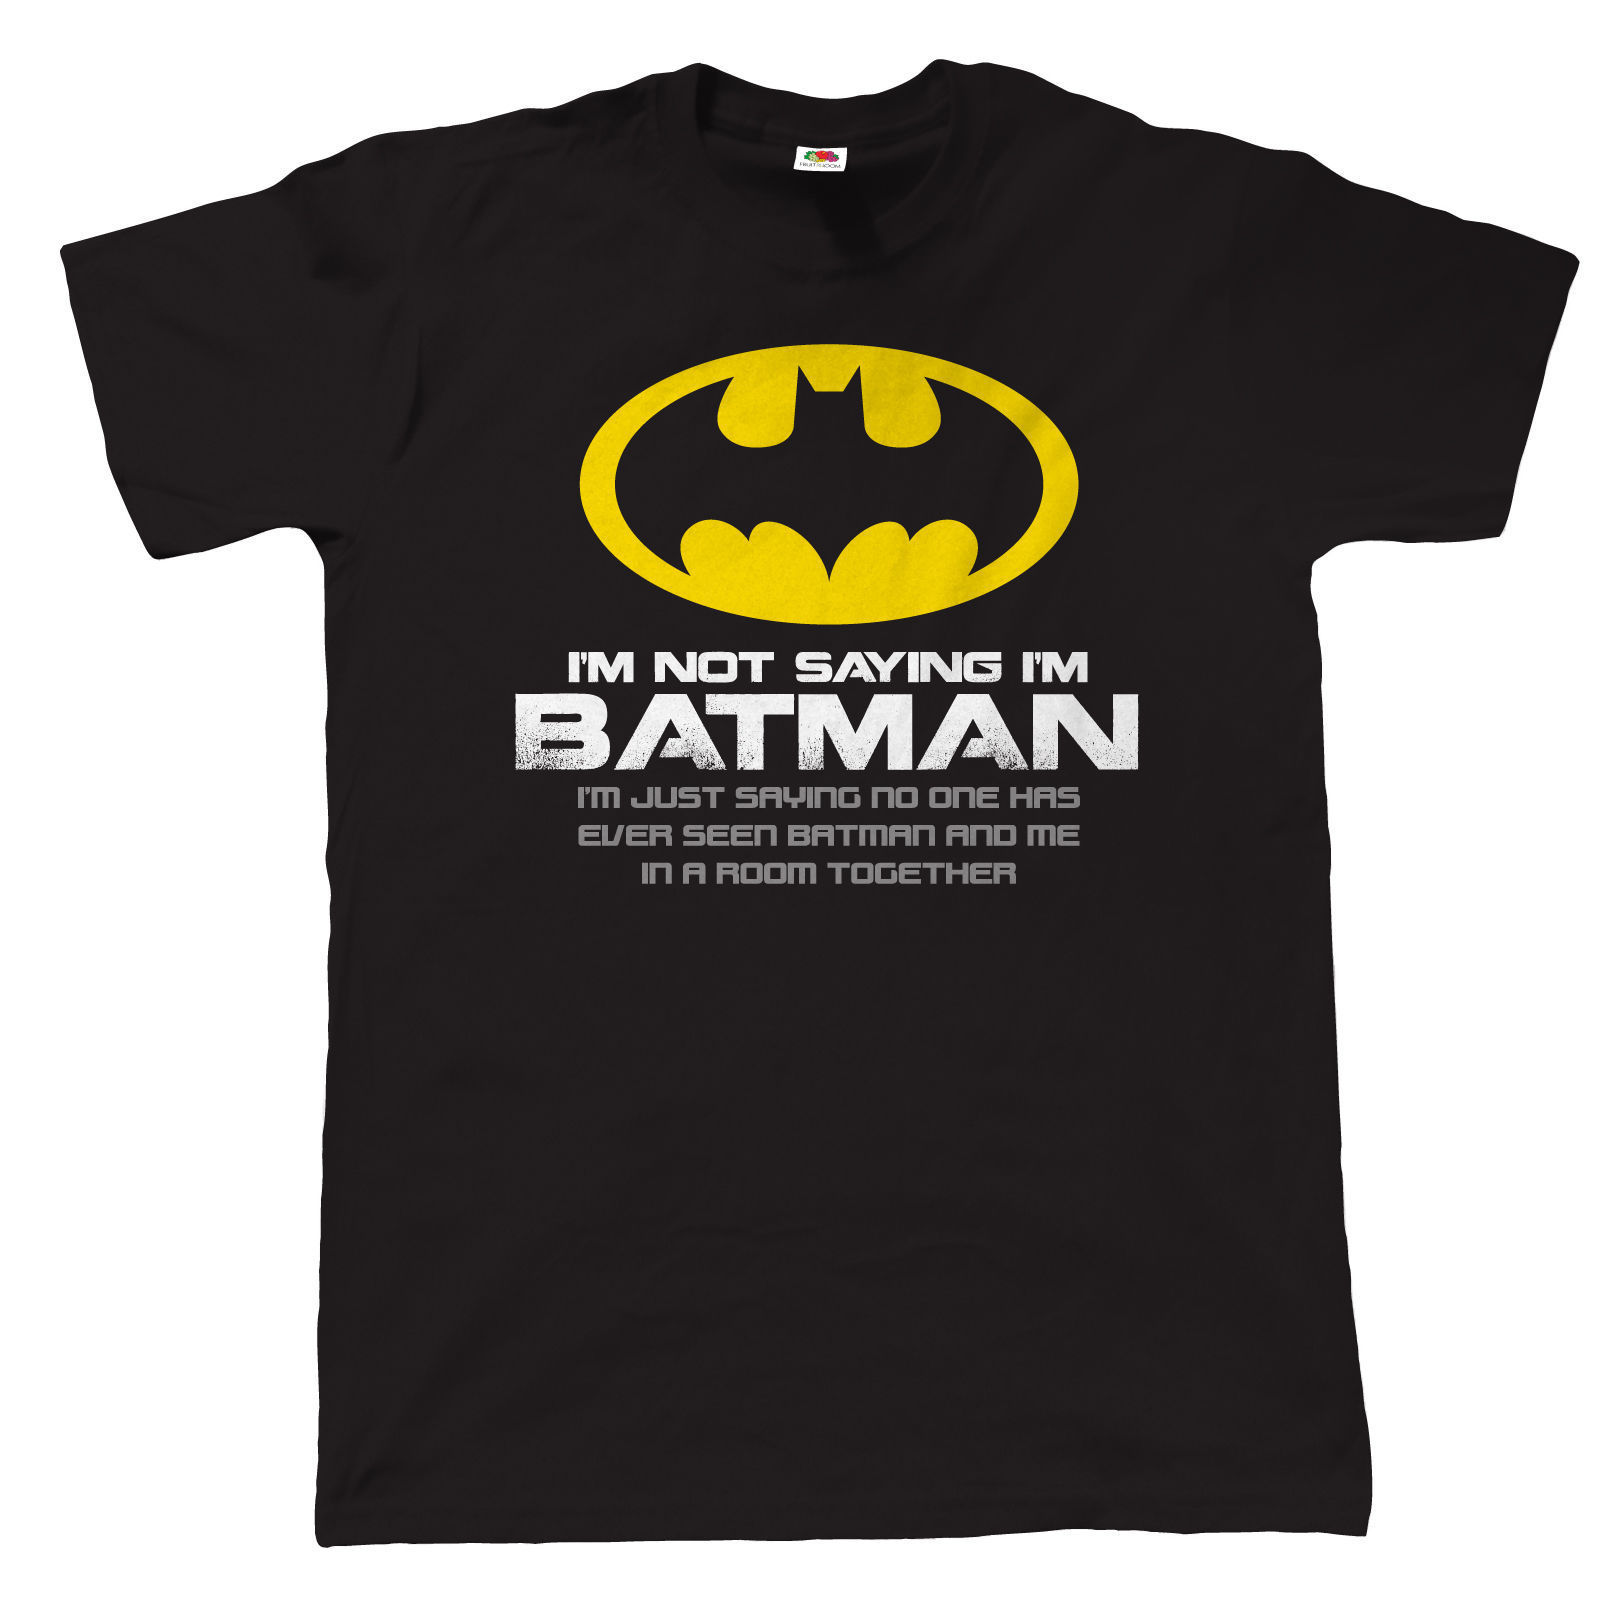 Im Not Saying Im Batman, Mens Funny T Shirt, Gift for Dad Fathers Day New Arrival Male Tees Casual Boy T-Shirt Tops Discounts